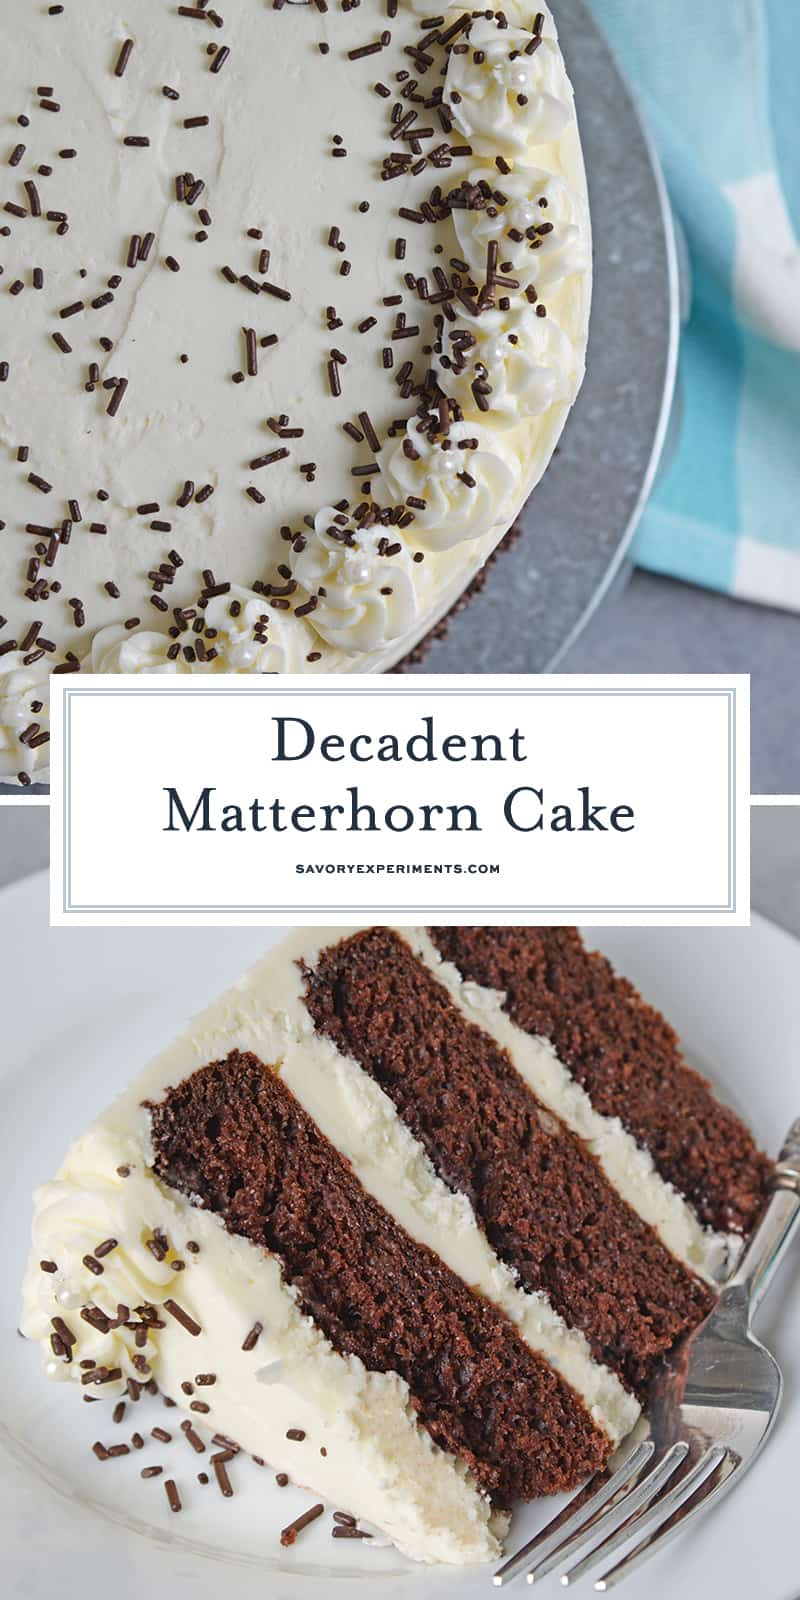 The Matterhorn Cake from Sweet Surrender is a chocolate layer cake using almond and vanilla with a rich cream cheese buttercream frosting. #matterhorncake #chocolatelayercake www.savoryexperiments.com